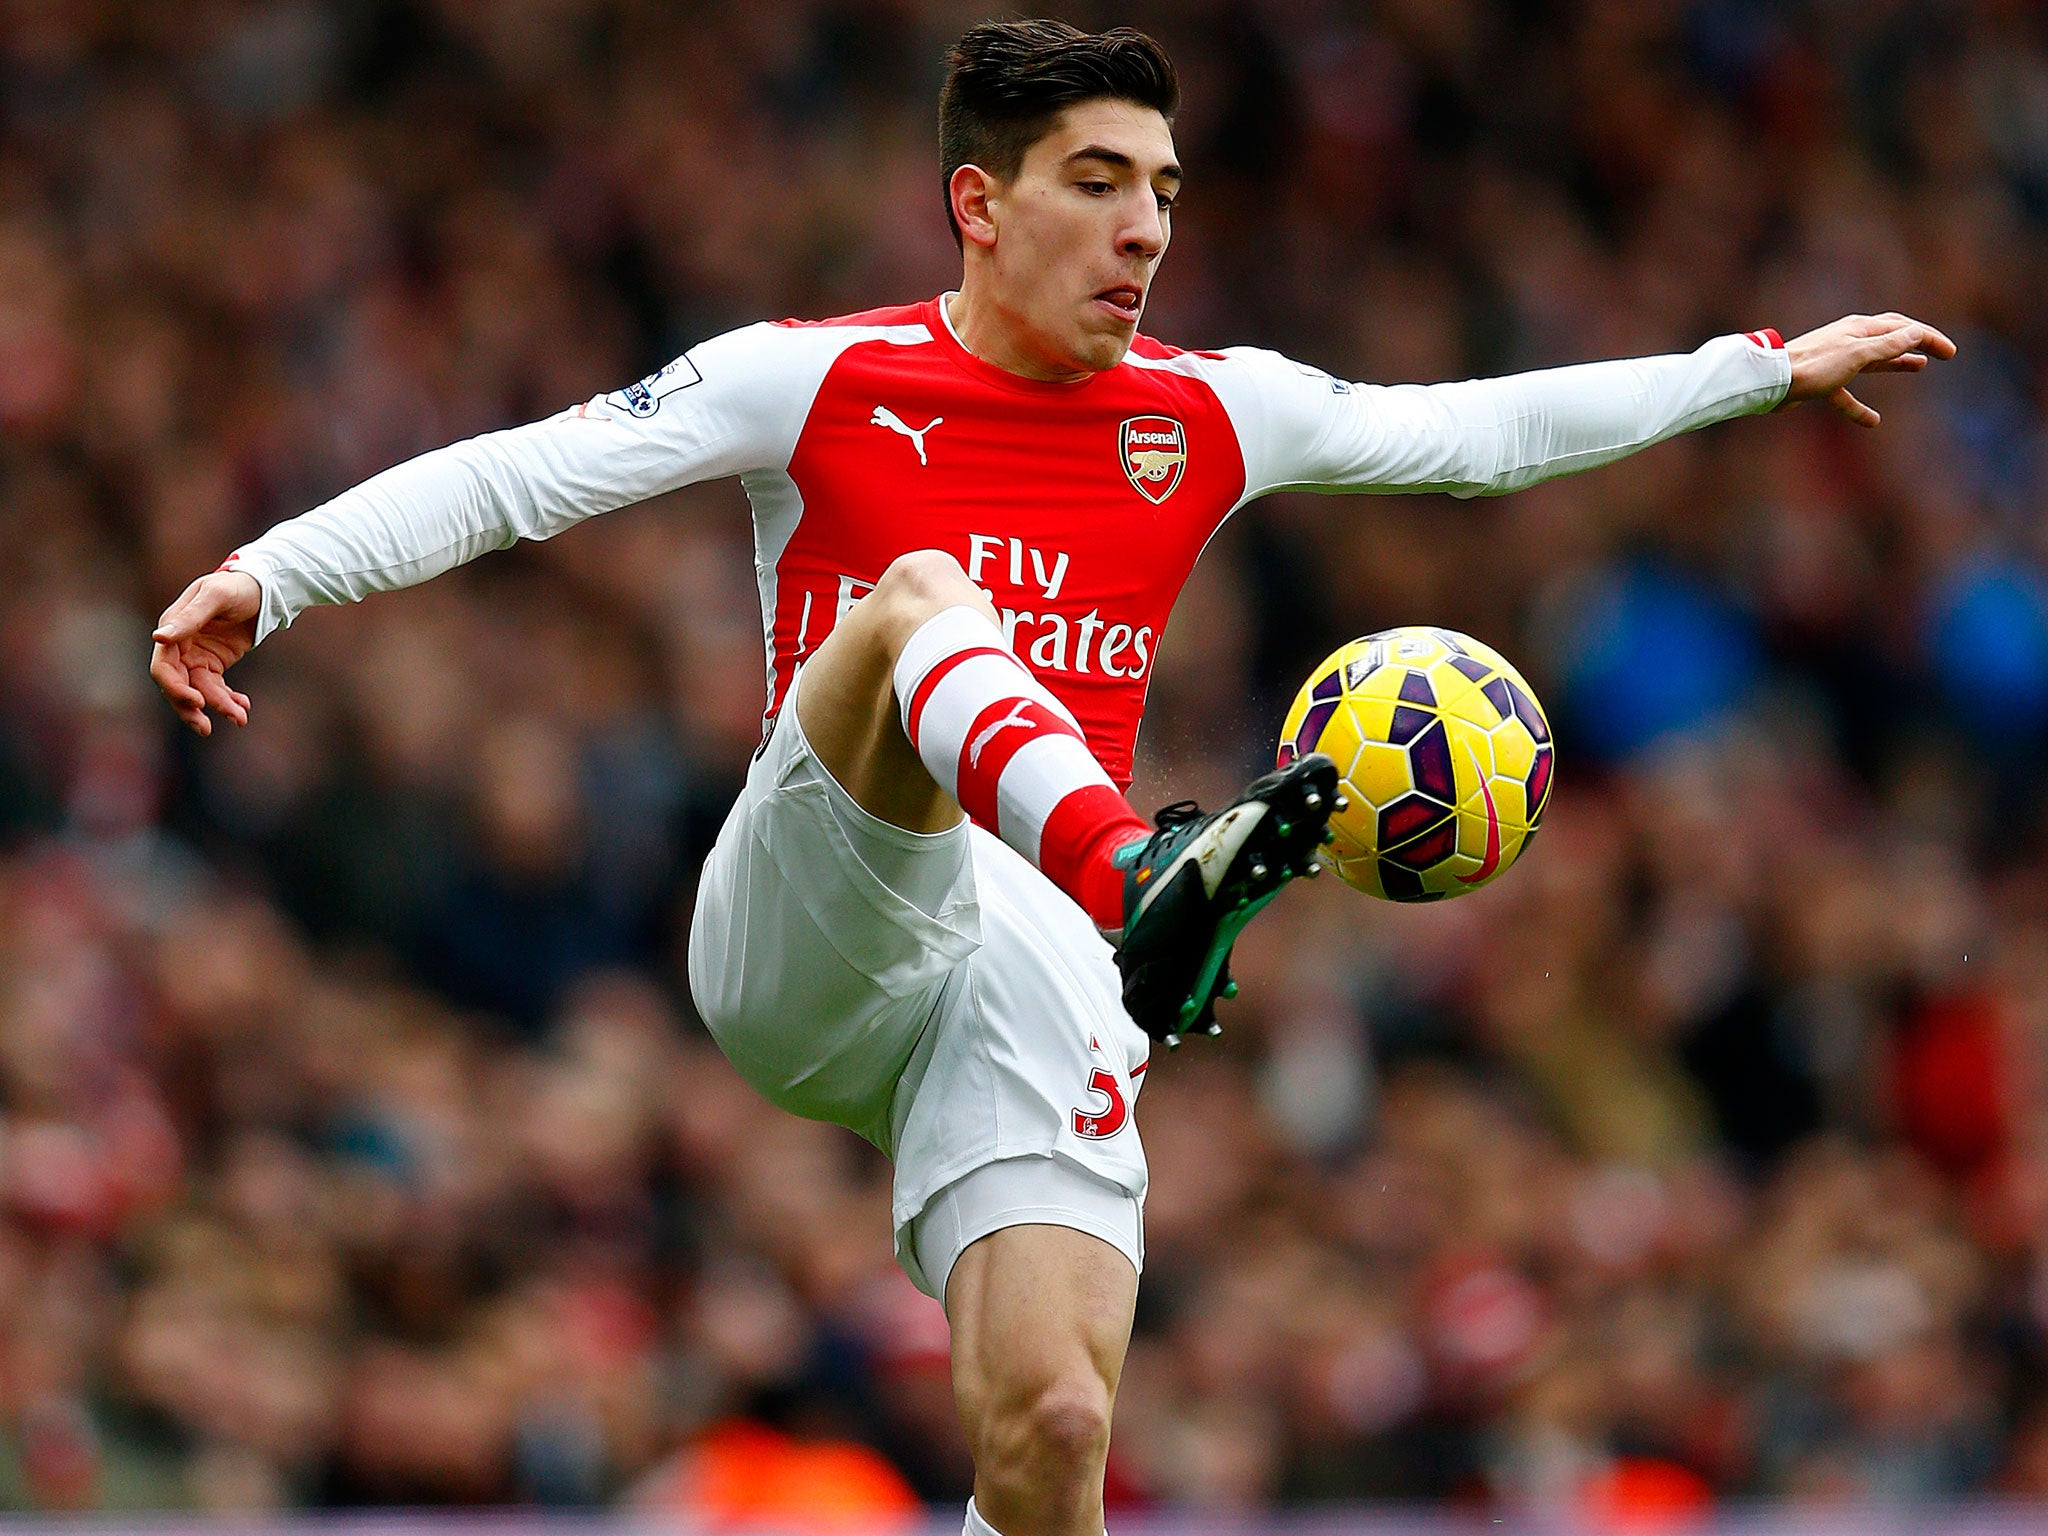 Hector Bellerin Opens Up On Switch From Barcelona To